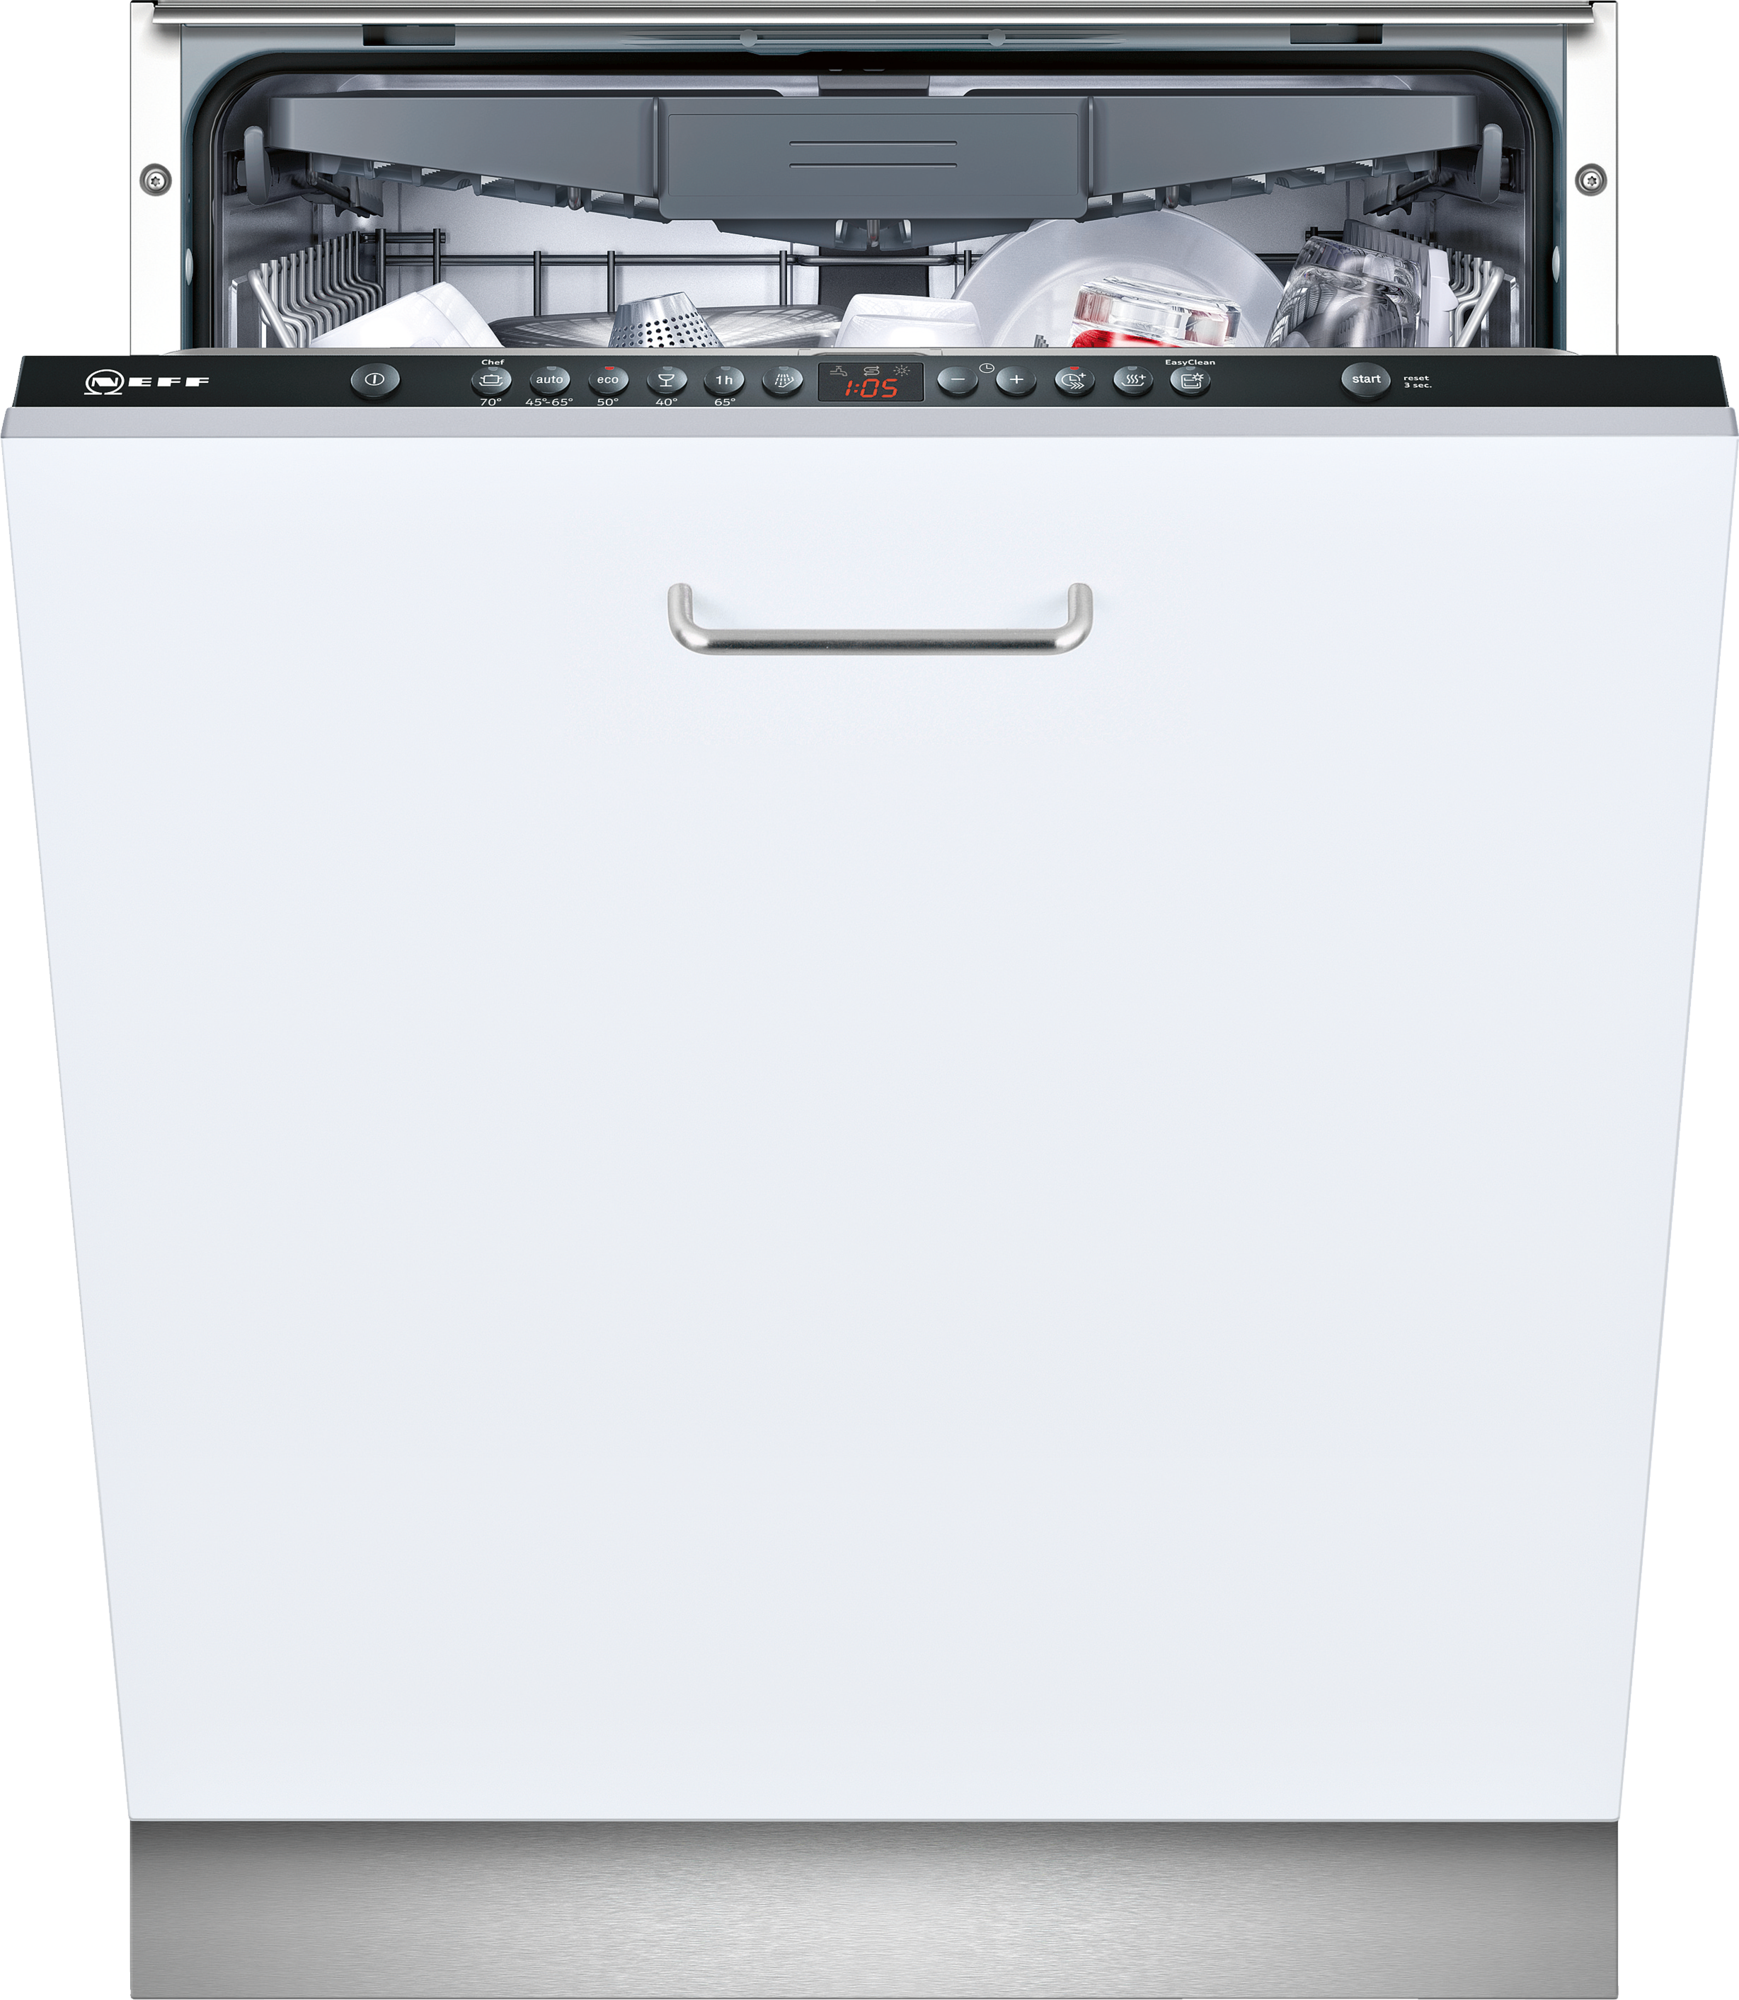 Neff S513k60x1g Fully Integrated Black Dishwasher Integrated